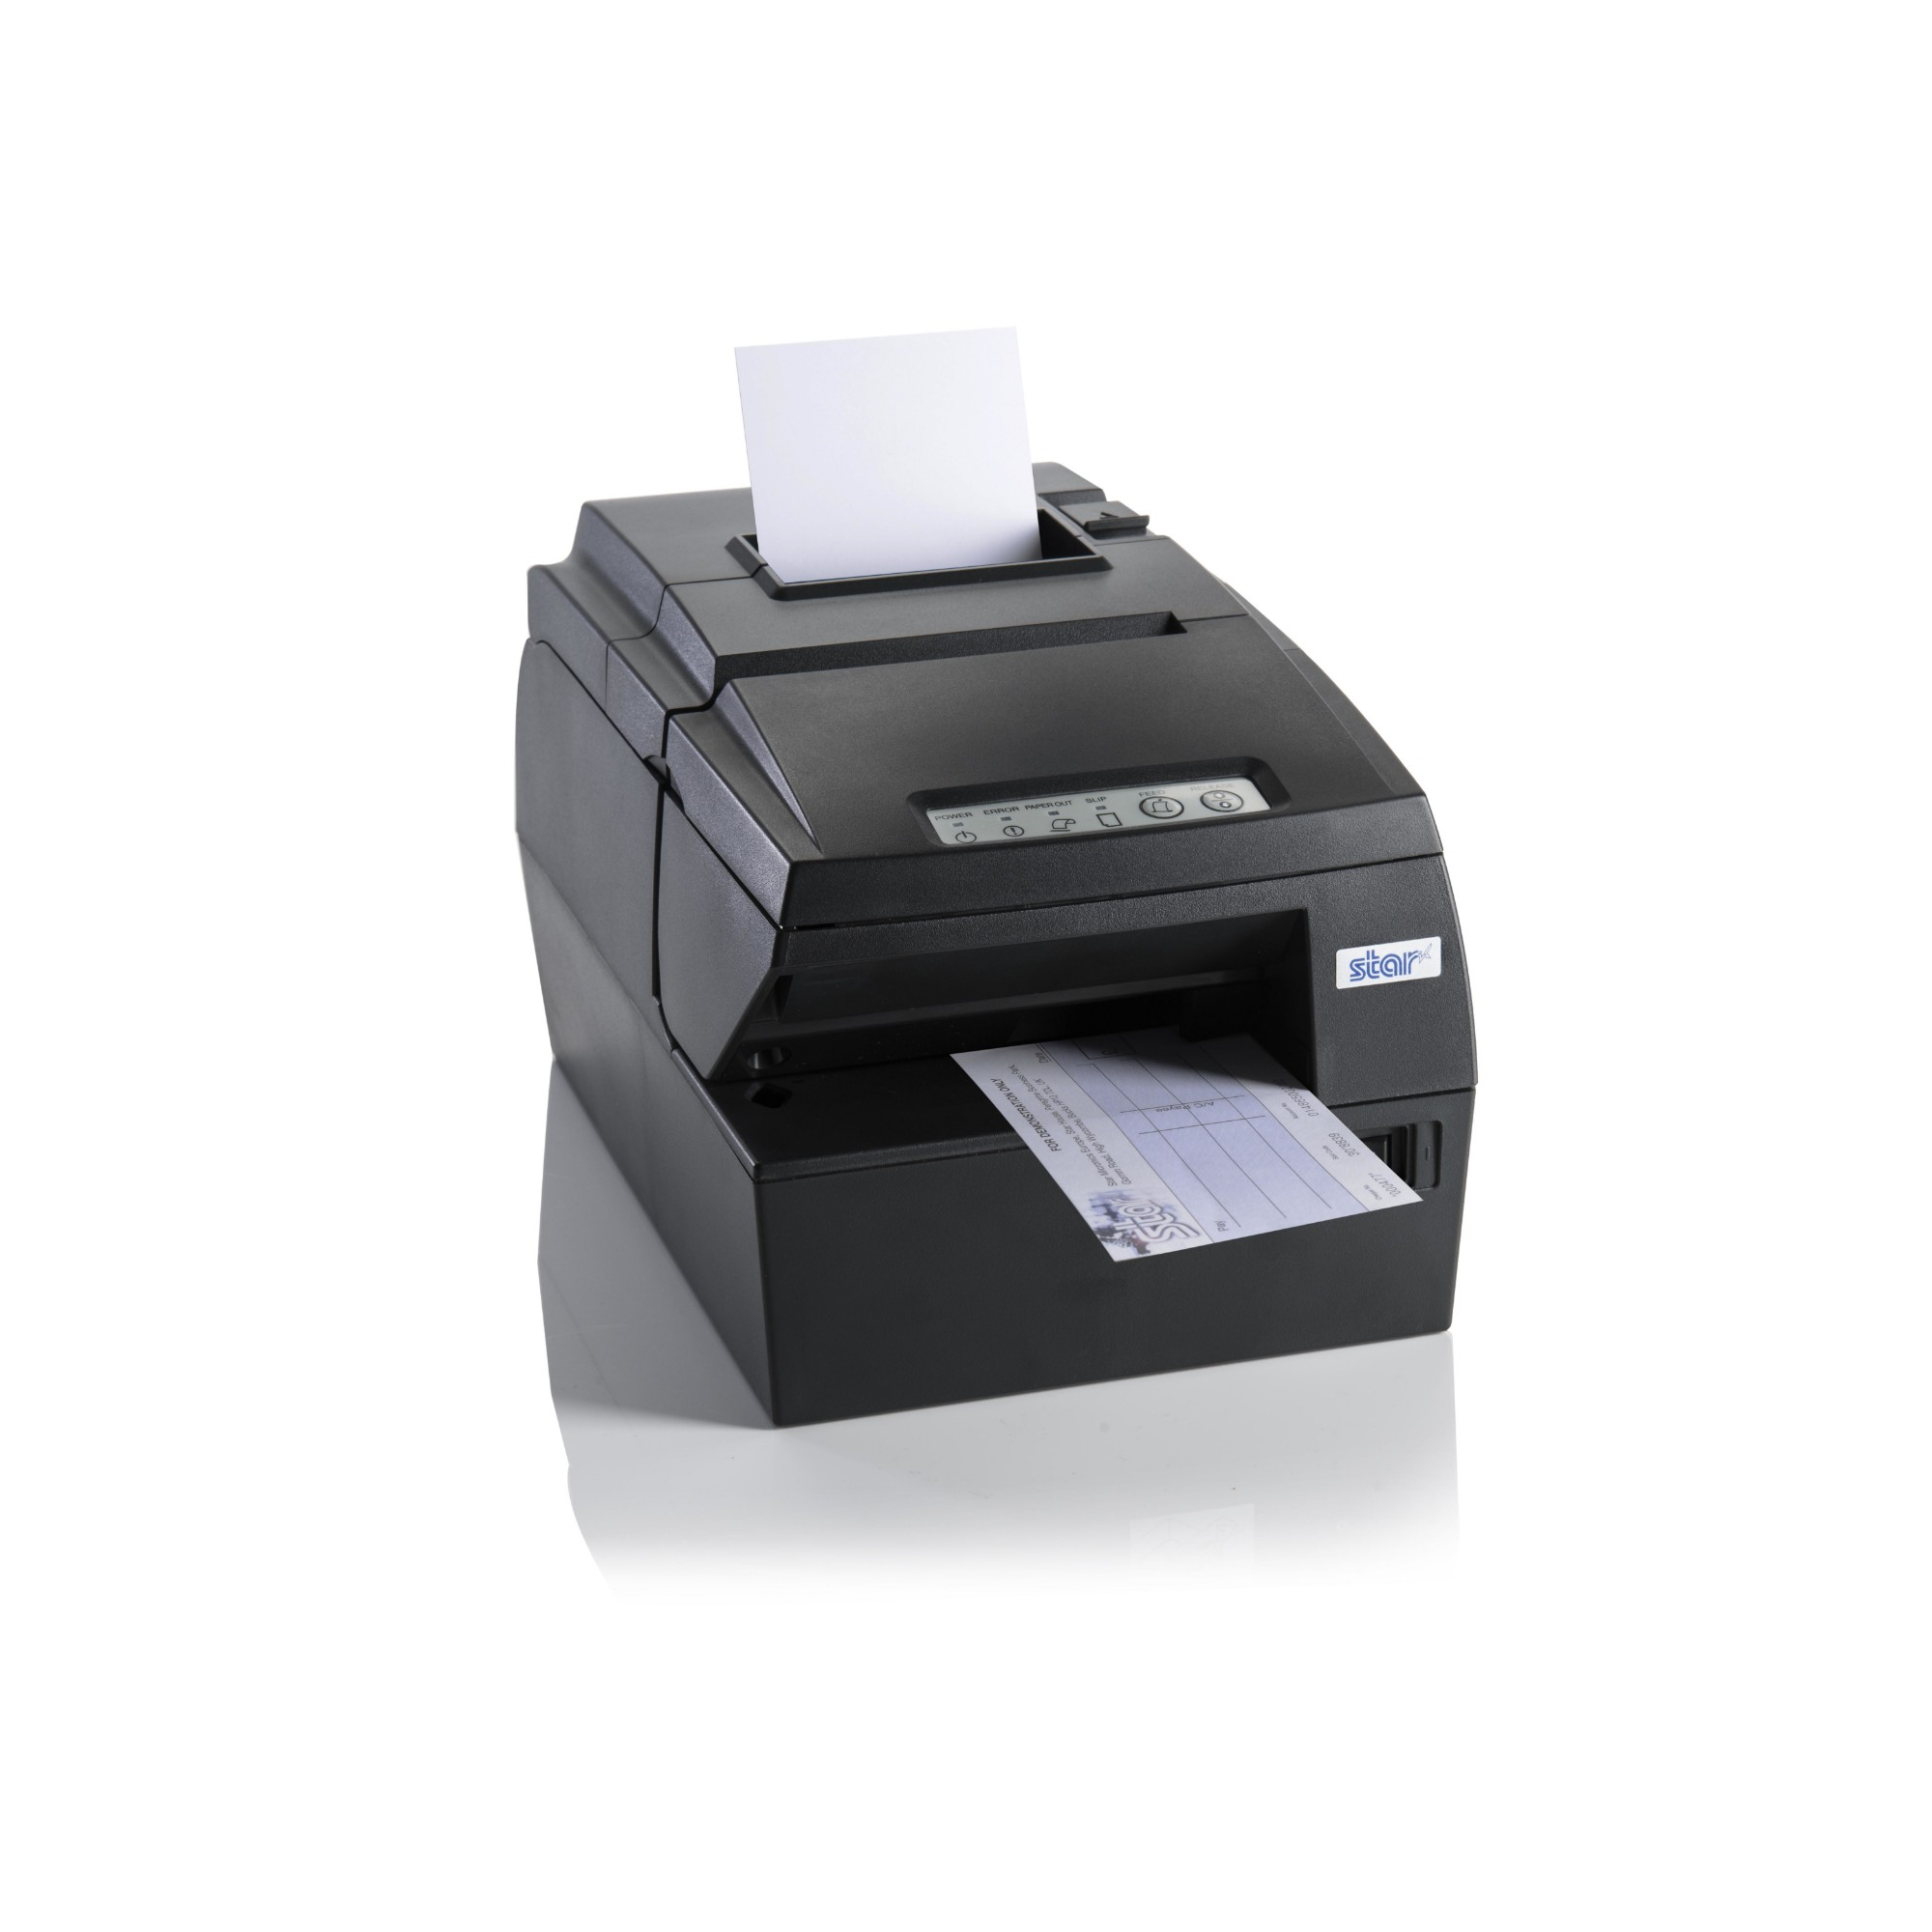 HSP7743-24 - Hybrid Printer - Thermal / Matrix - No Interface - Grey